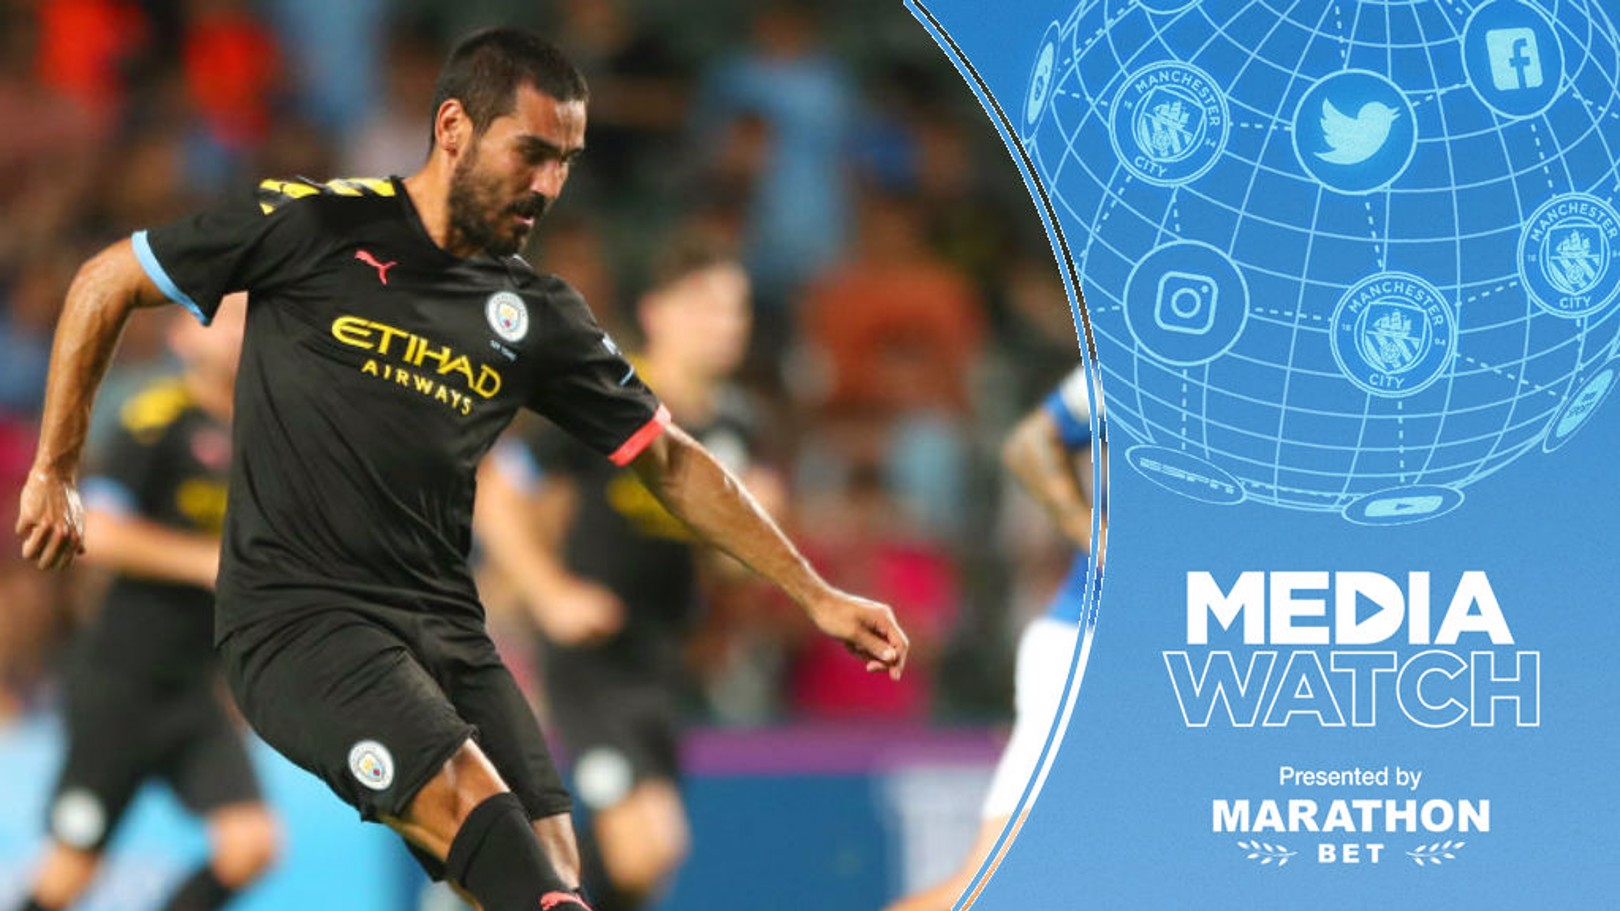 Media Watch: 'City trio ranked the best in Europe'